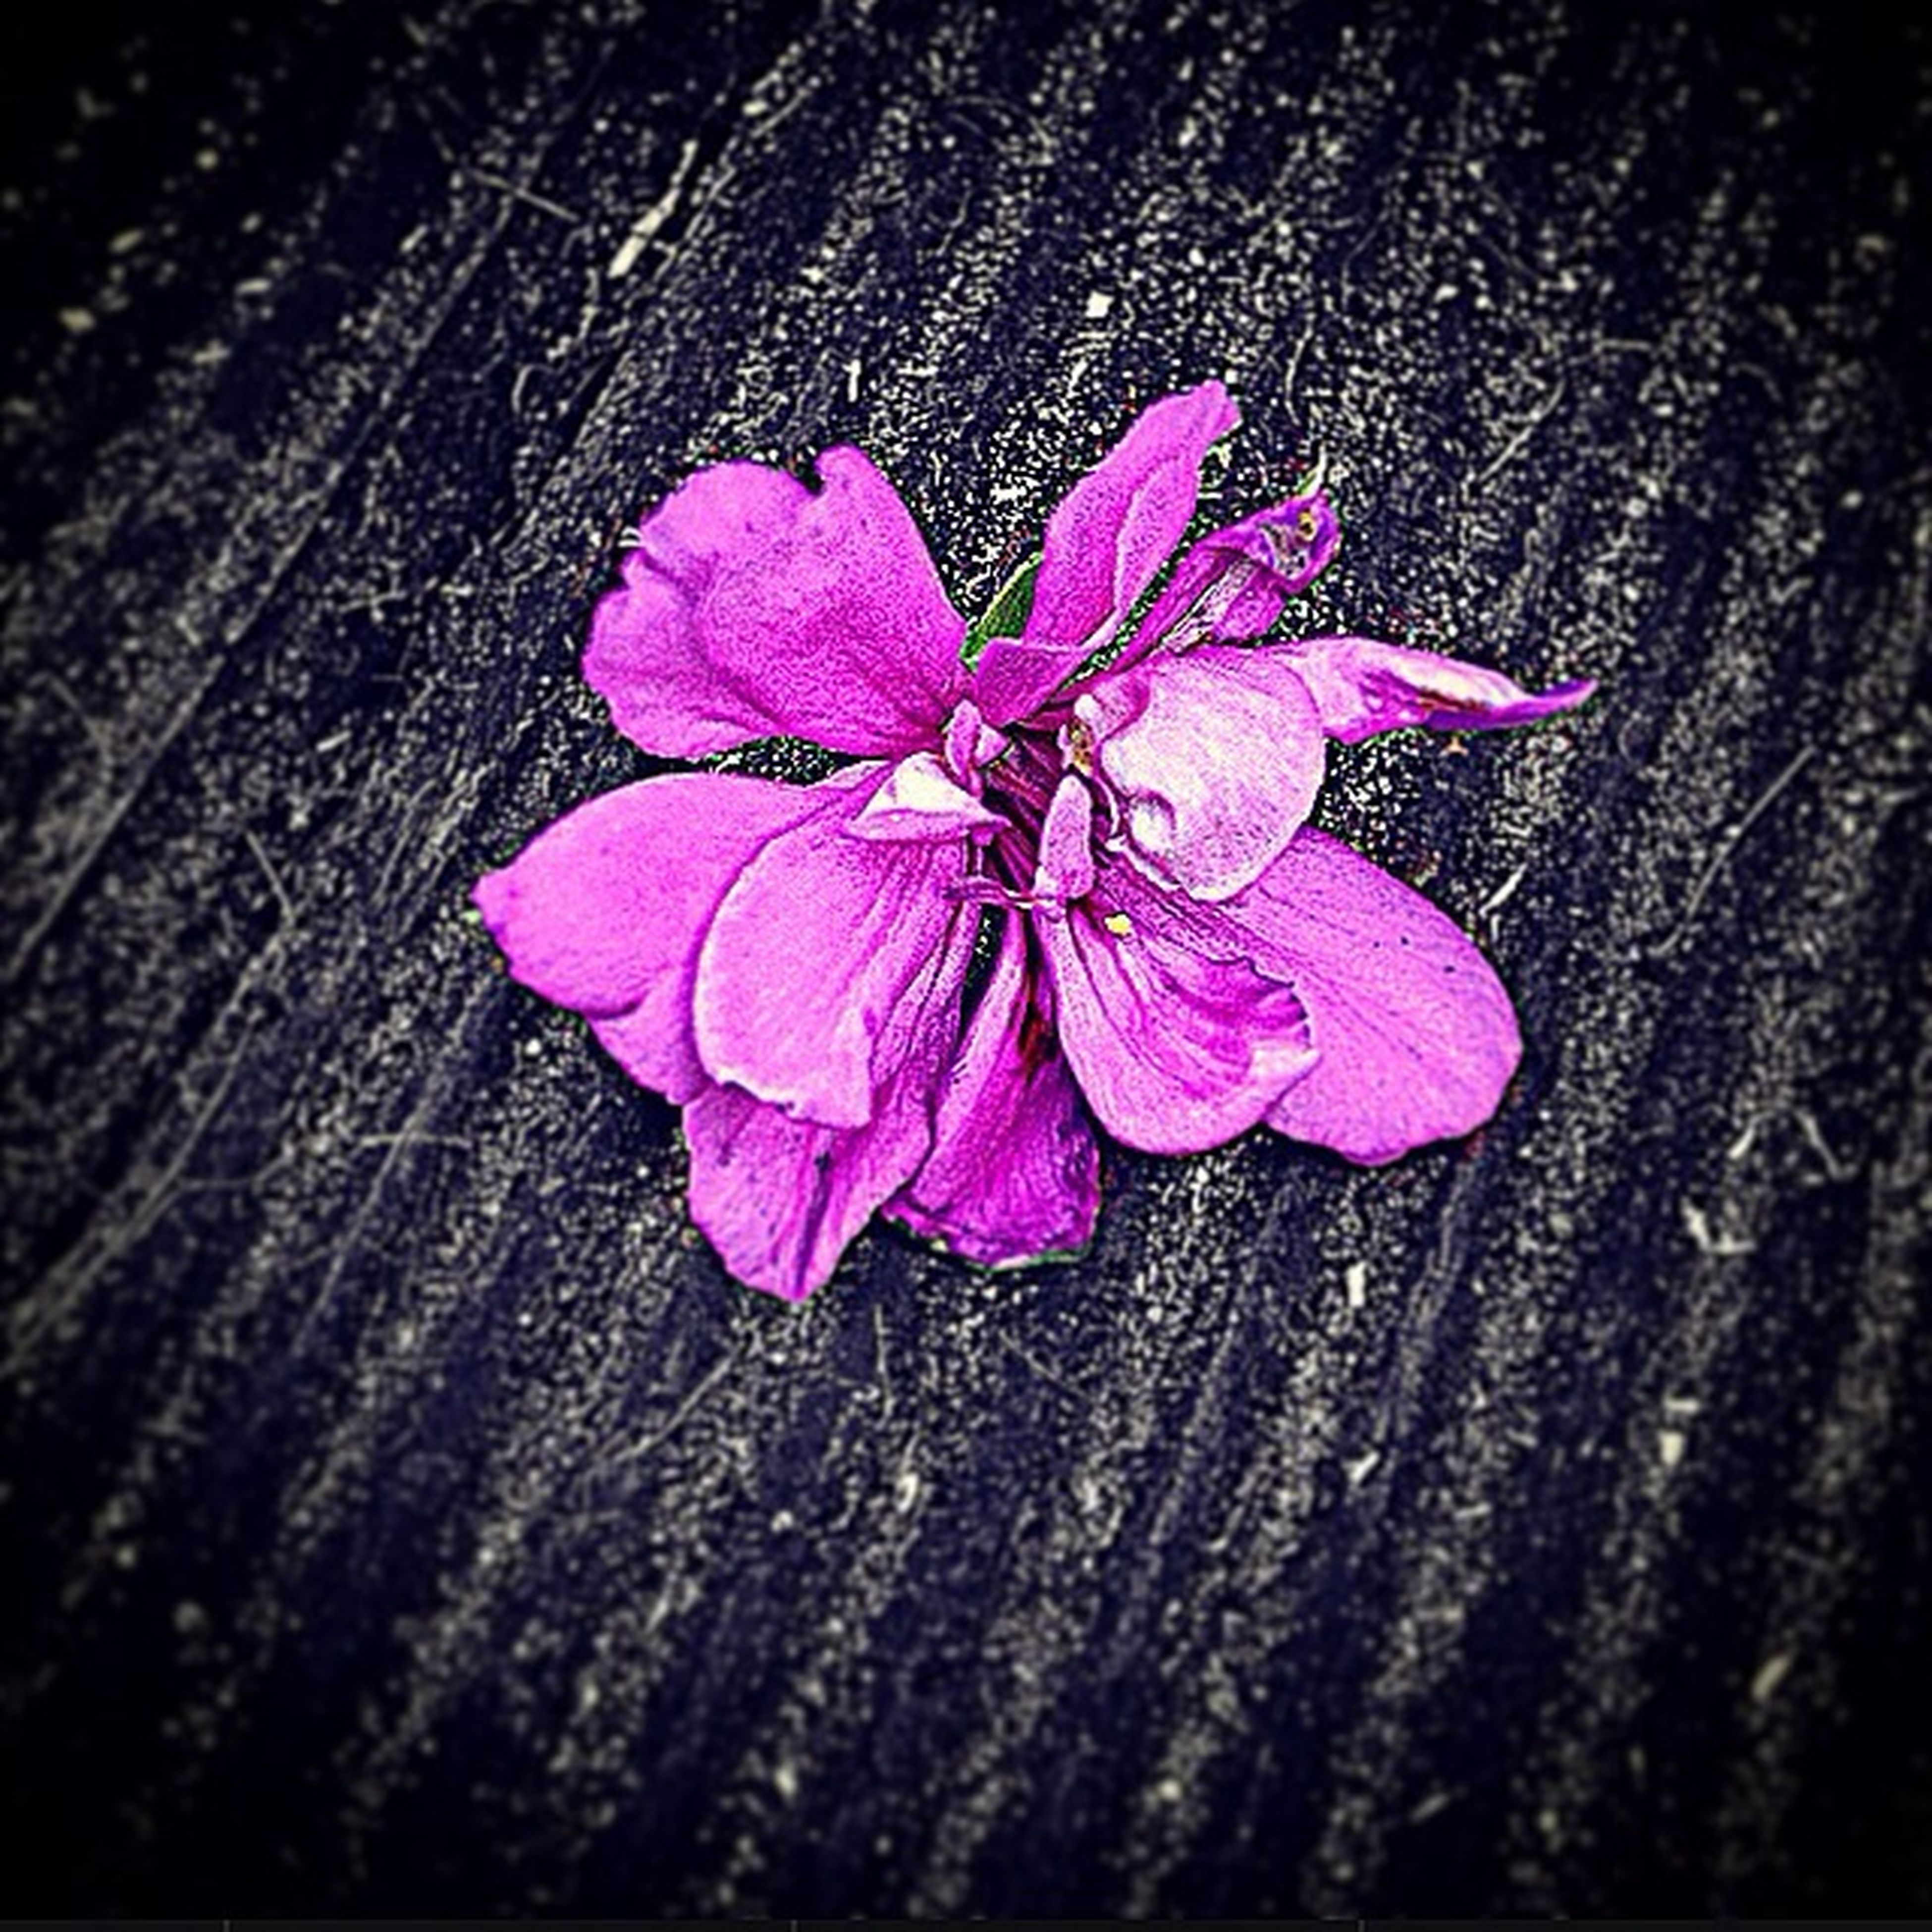 flower, fragility, petal, close-up, high angle view, pink color, flower head, nature, freshness, single flower, beauty in nature, directly above, no people, outdoors, natural pattern, growth, textured, botany, day, pink